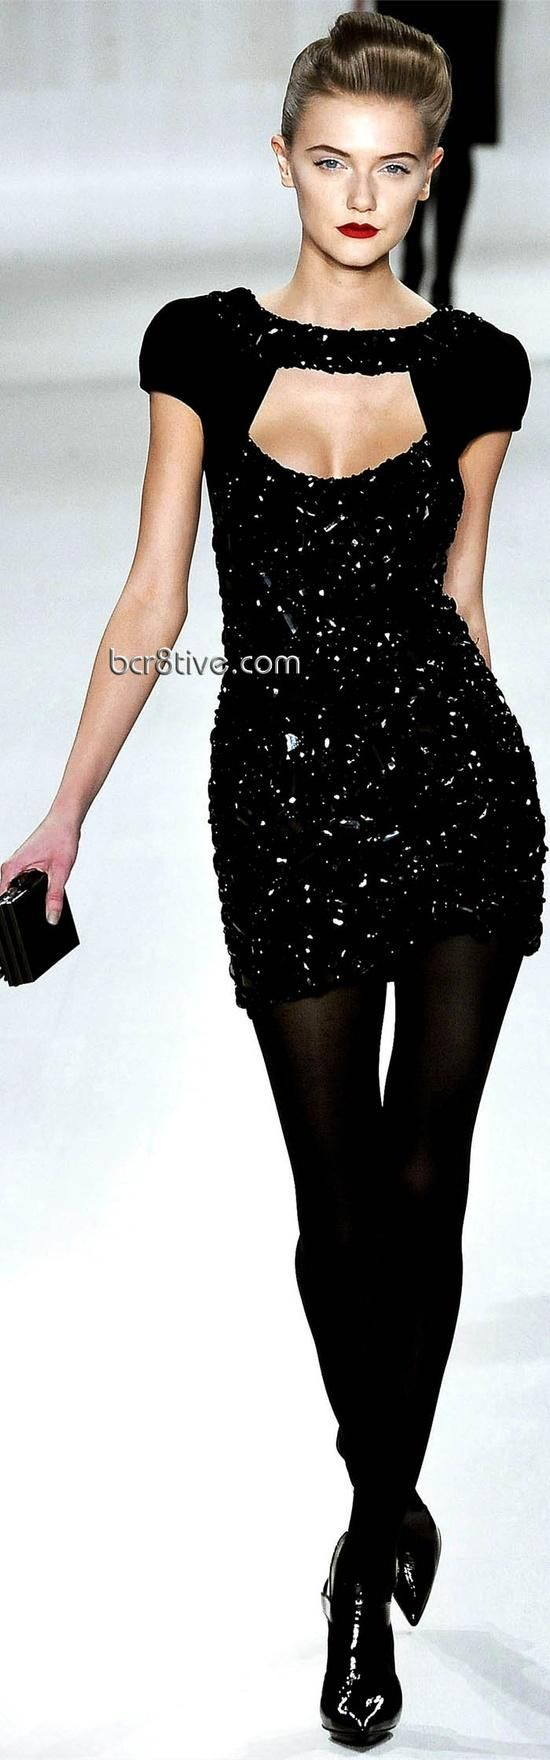 Elie Saab///This is Black///some blacks are faded to almost a blue or grey...love the depth of this!